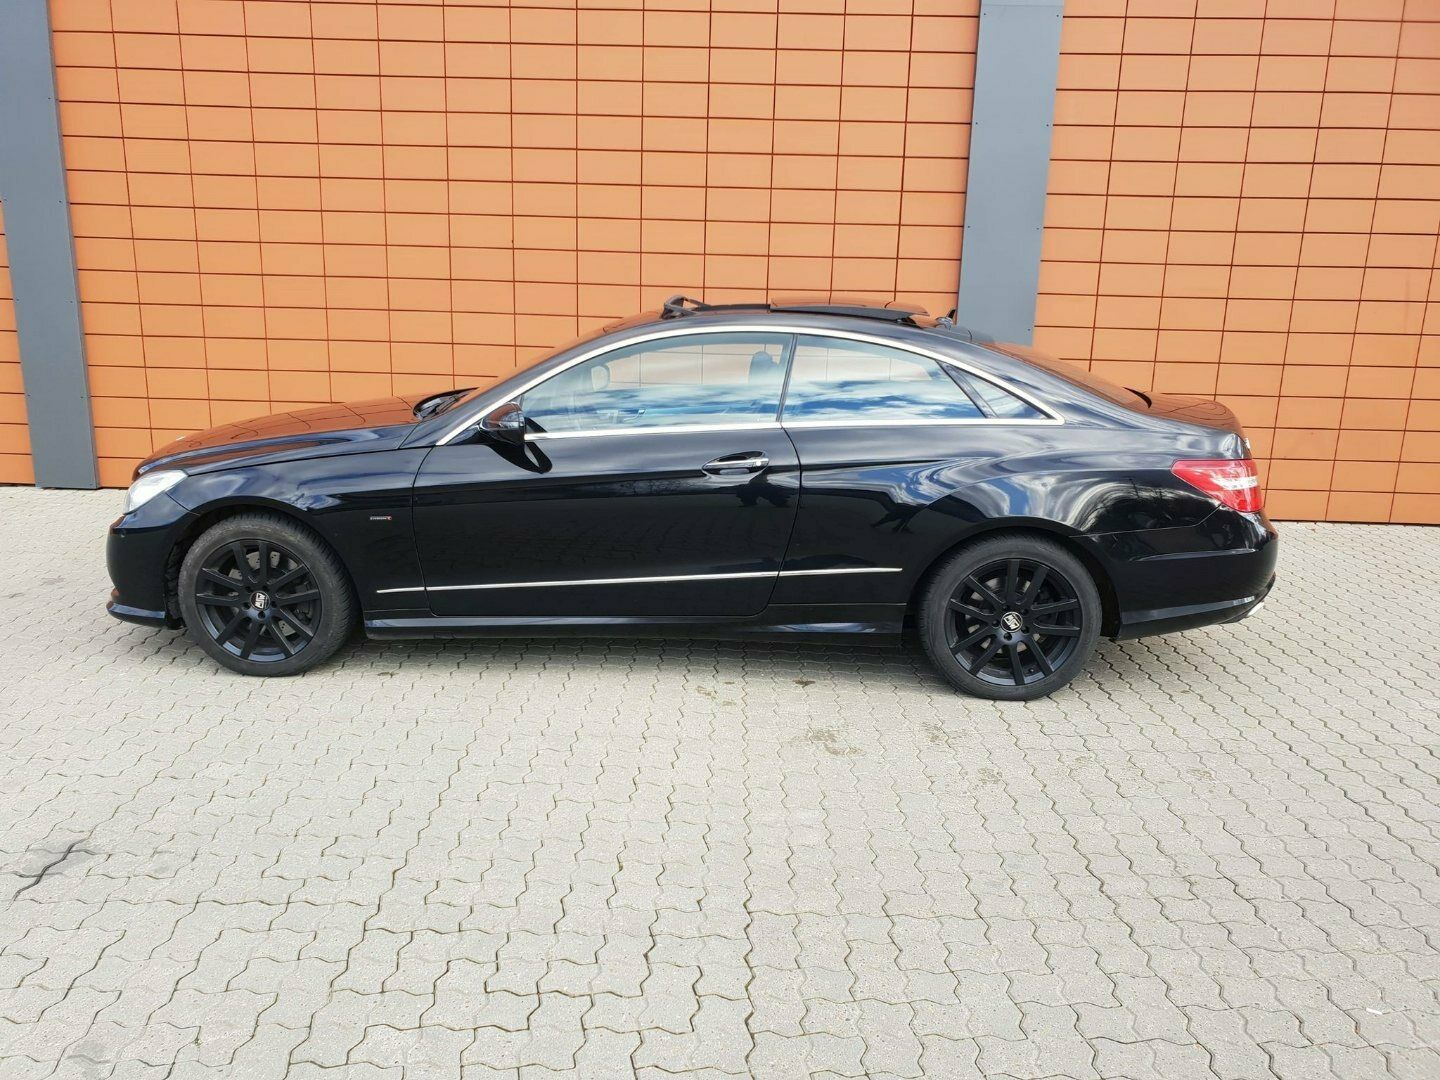 Mercedes E500 5,5 Avantgarde Coupé aut. 2d, Sort